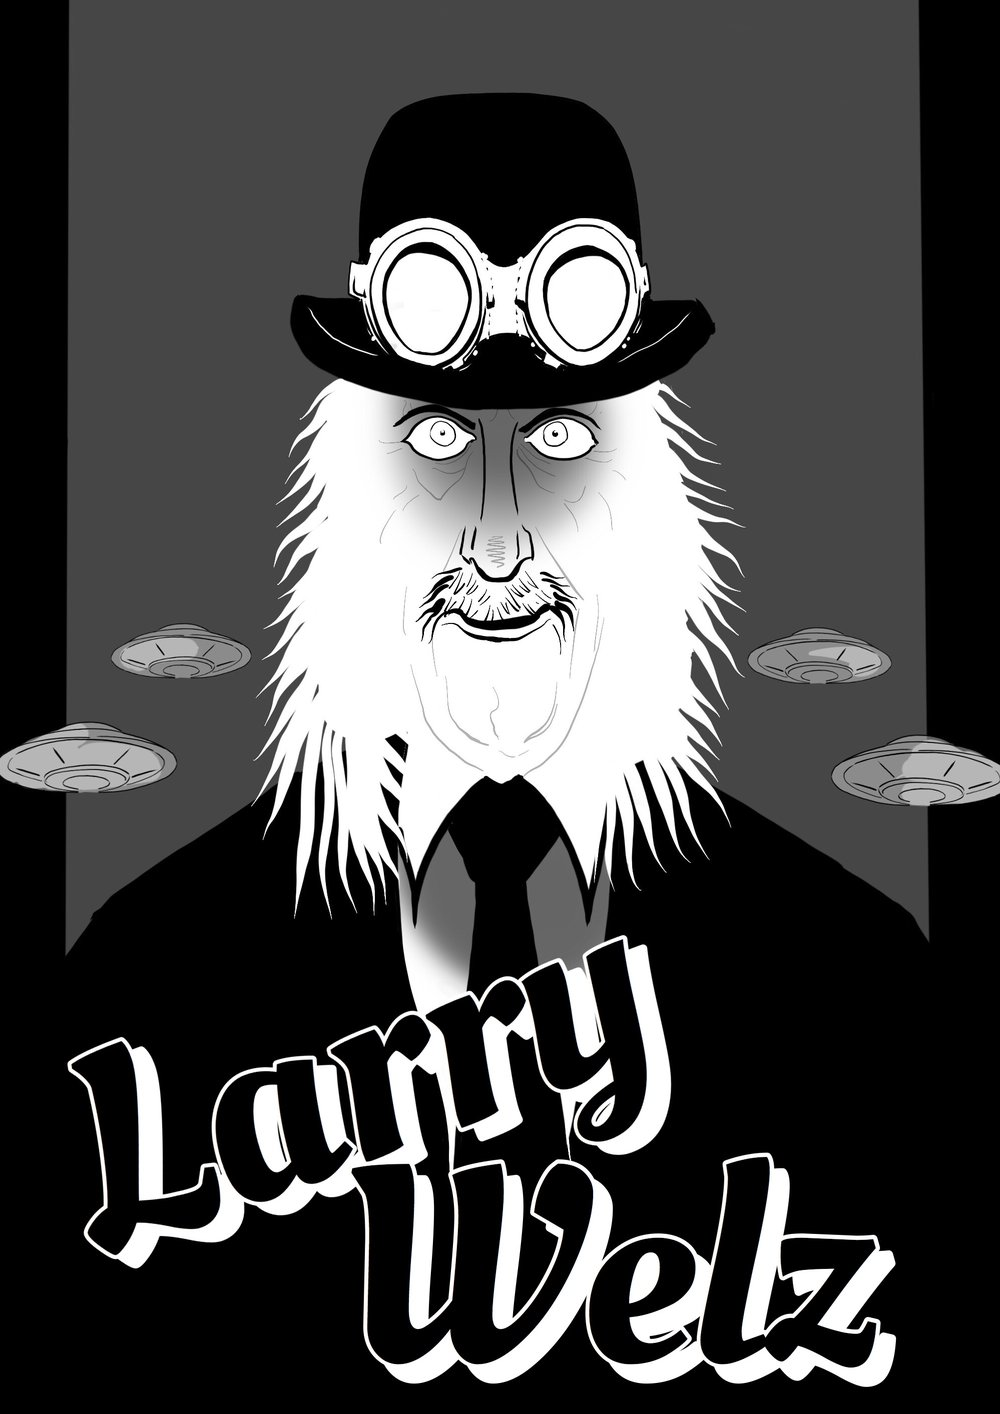 Above: Larry Welz by MagiciansHouse